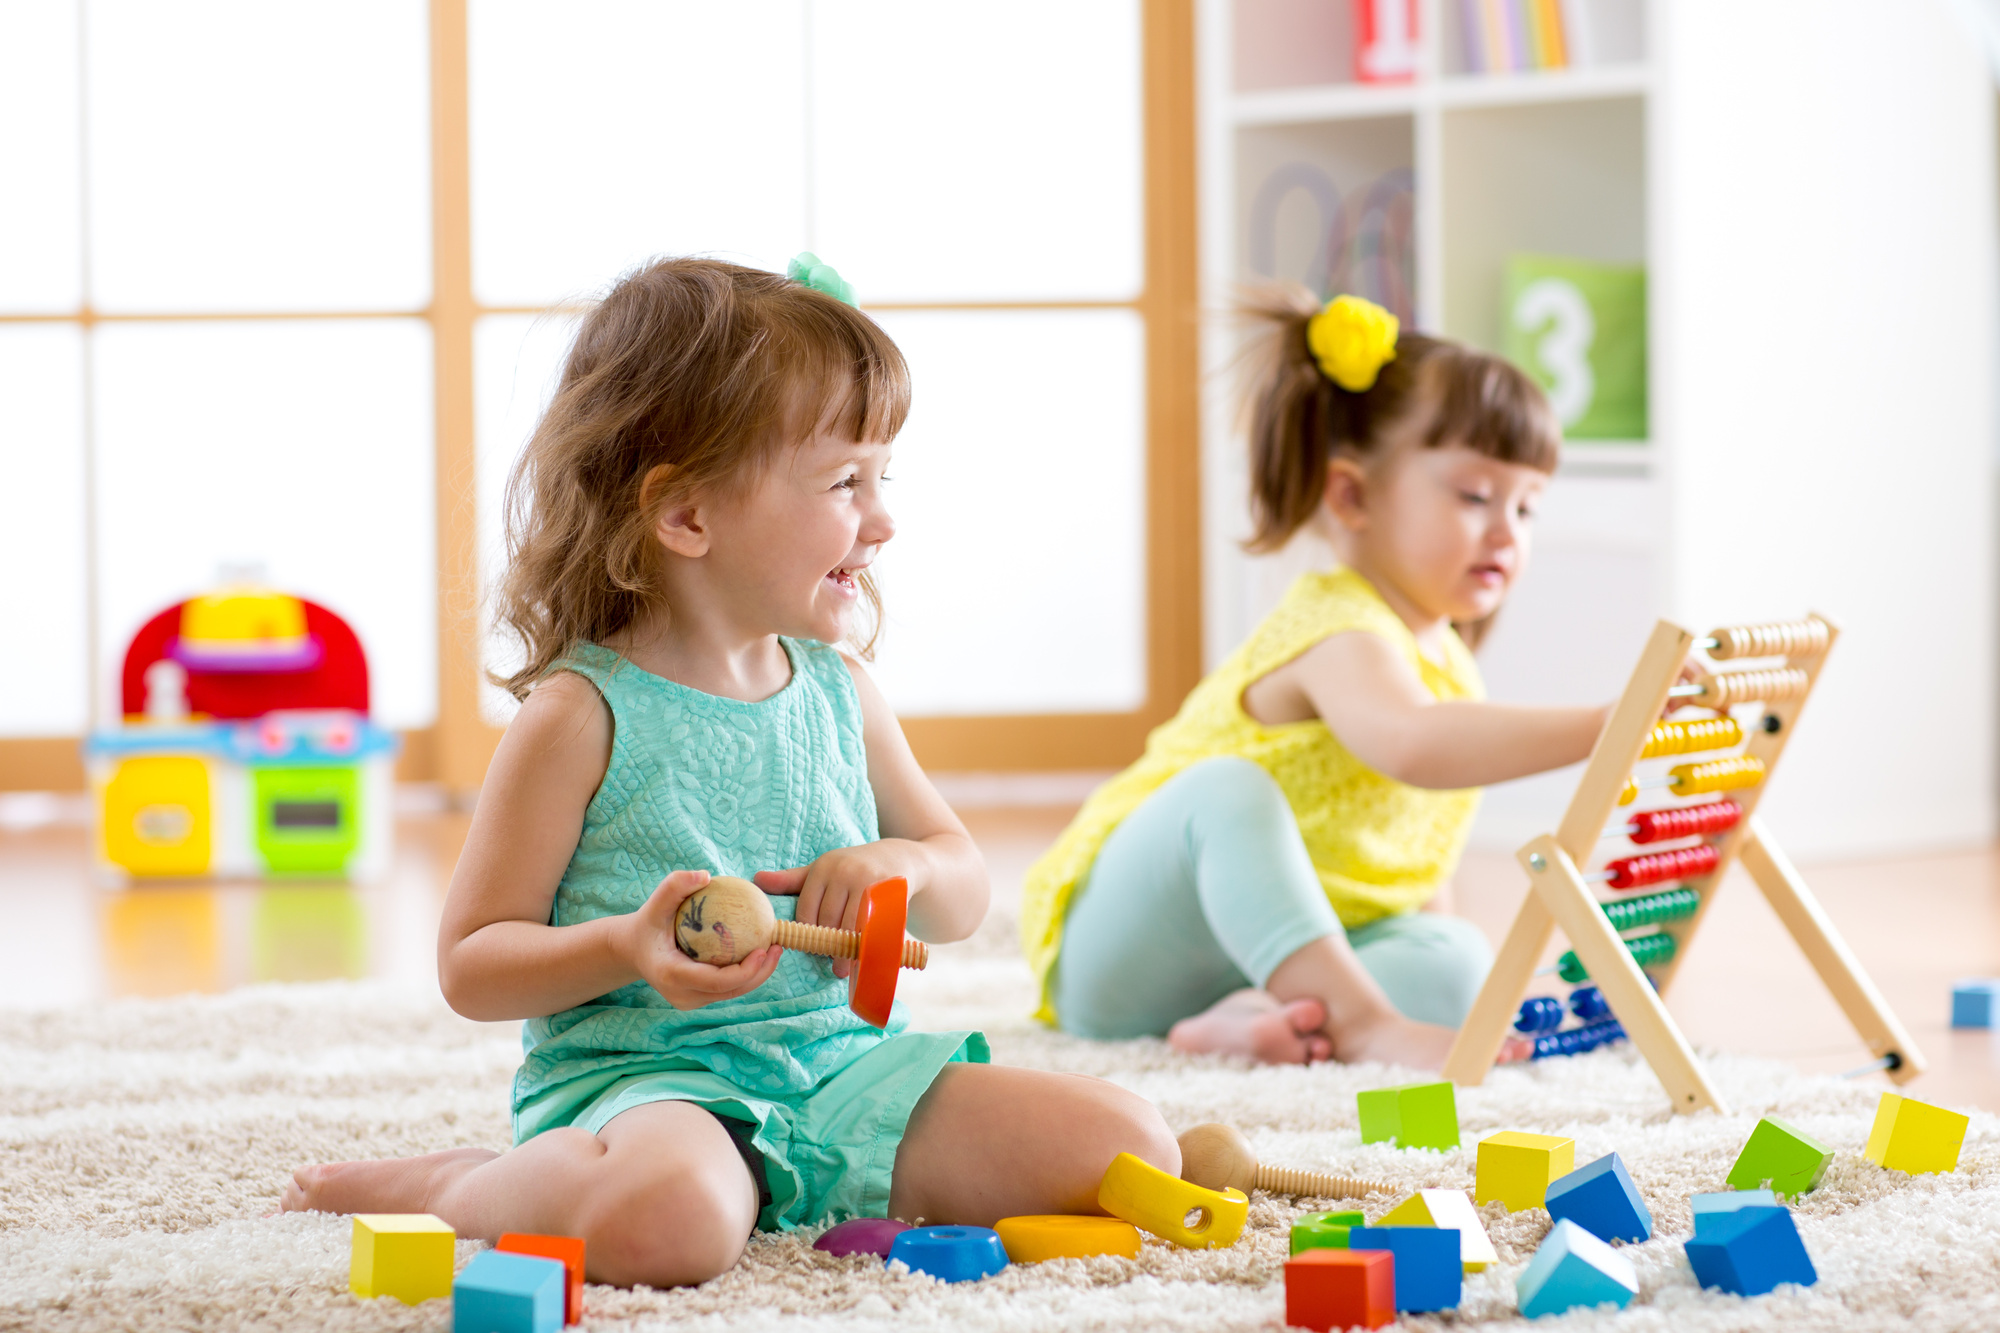 Early childhood learning centers